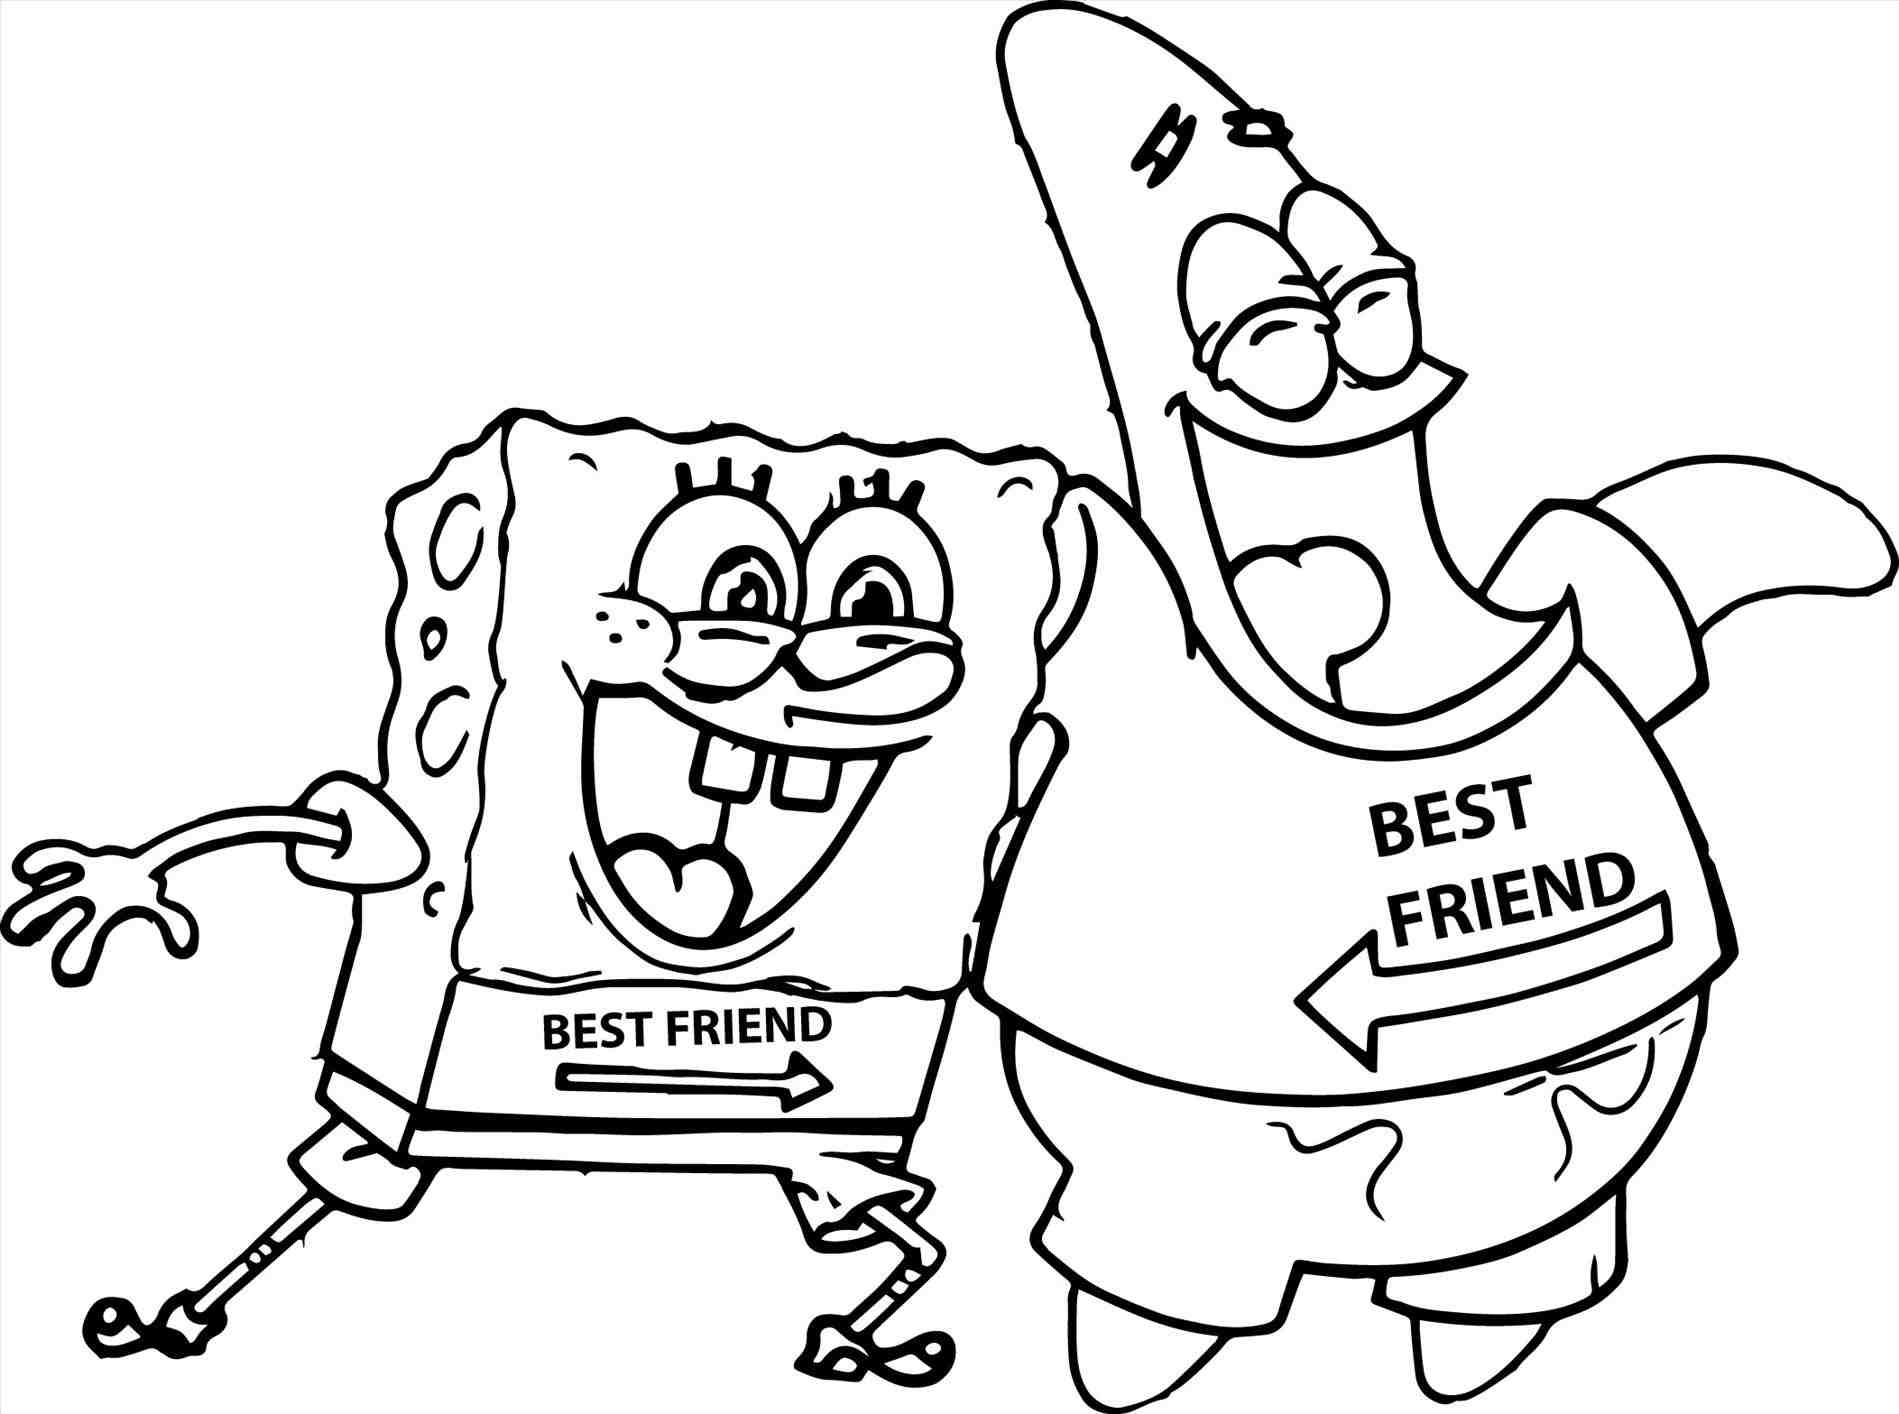 Hugging clipart cute friend. The images collection of